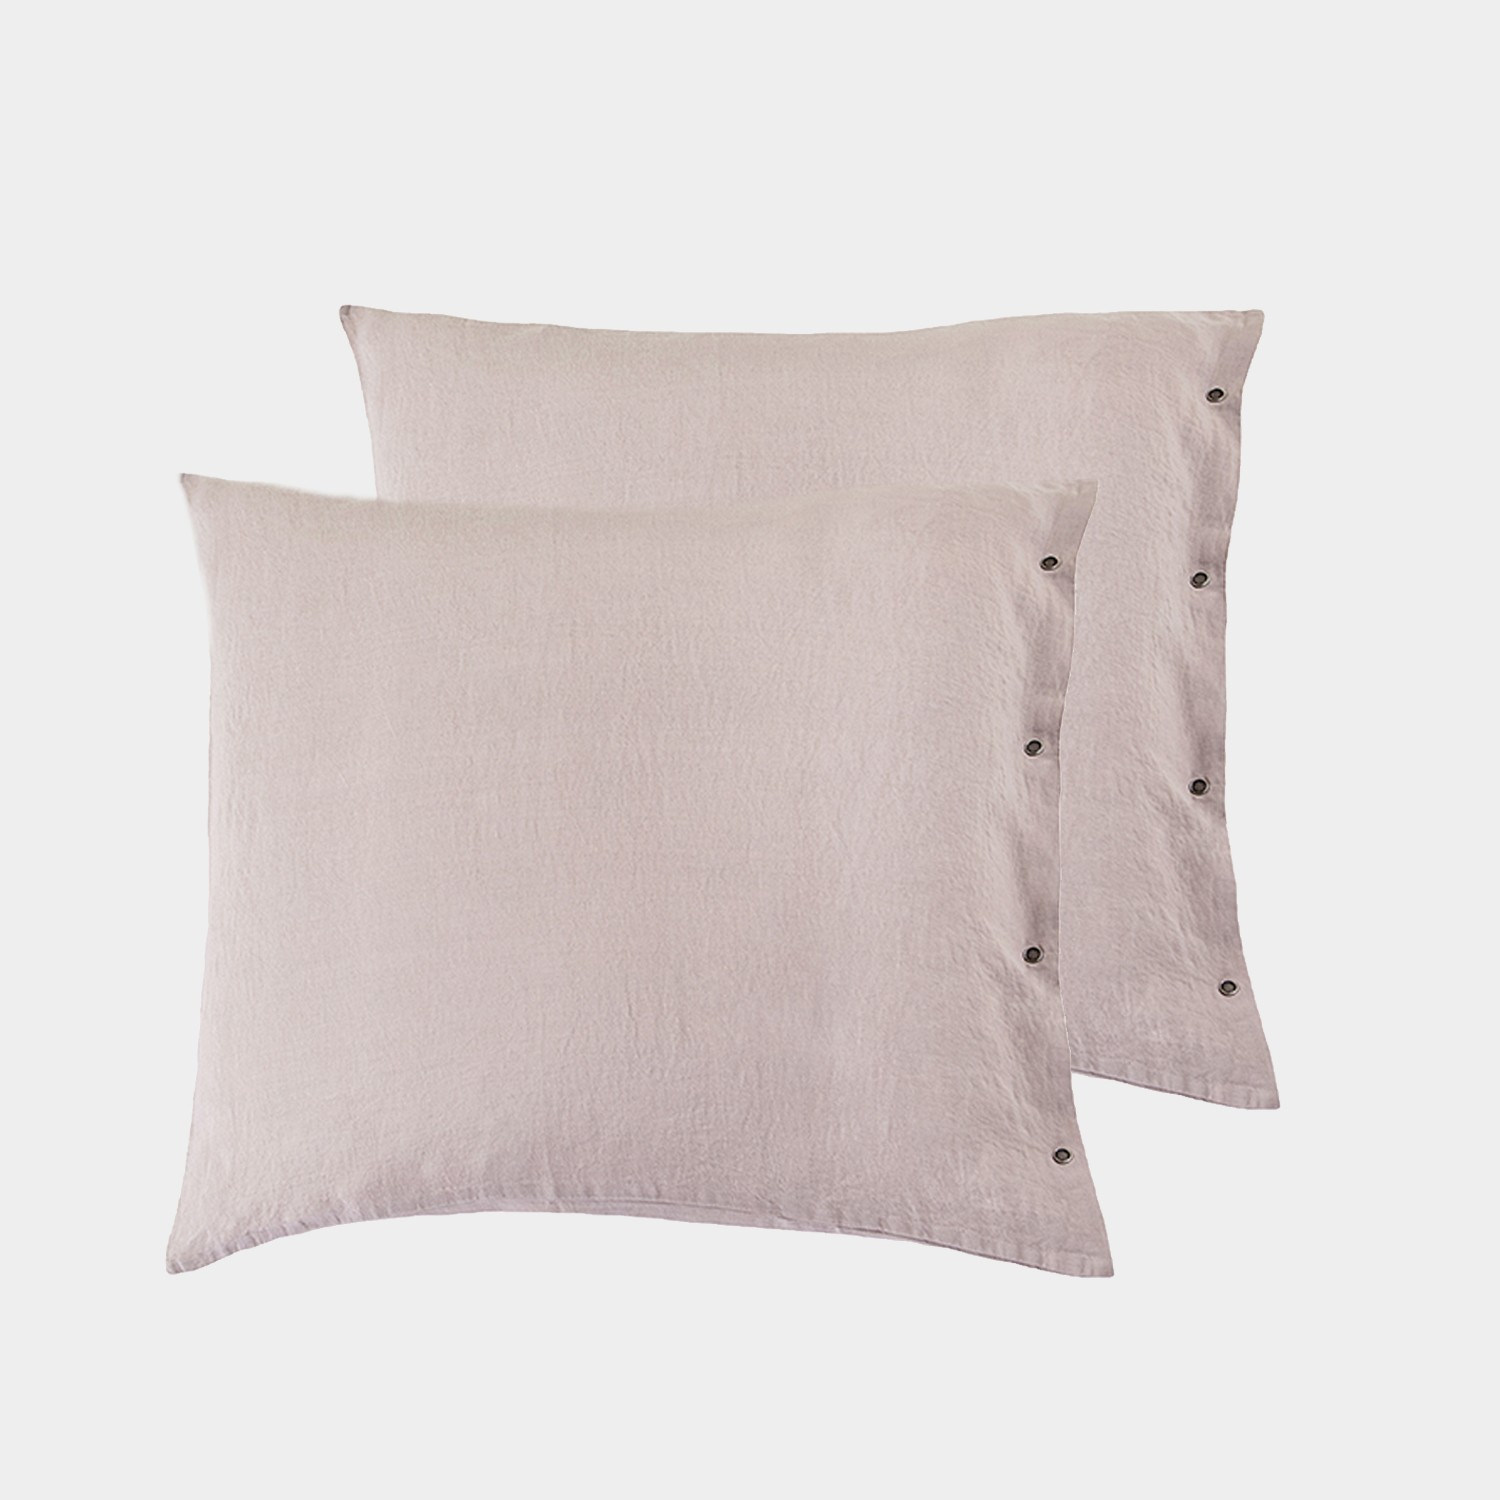 Pair of Premium Linen European Shams Calamine